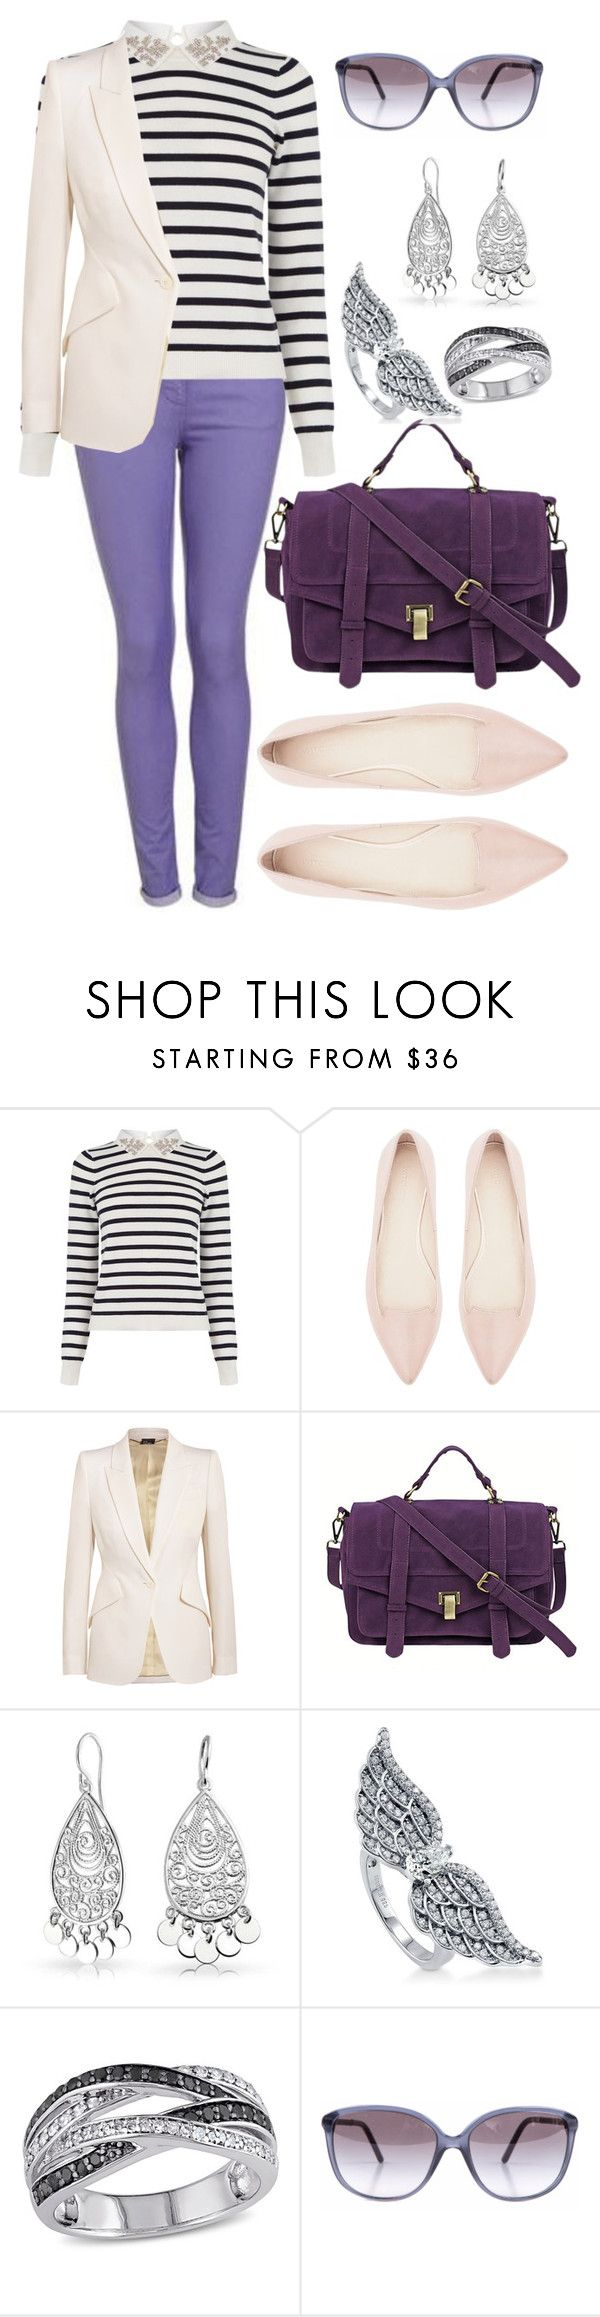 """""""Calça roxa"""" by fernanda-marfil ❤ liked on Polyvore featuring Oasis, Witchery, Alexander McQueen, Chicnova Fashion, Bling Jewelry, BERRICLE and Burberry"""